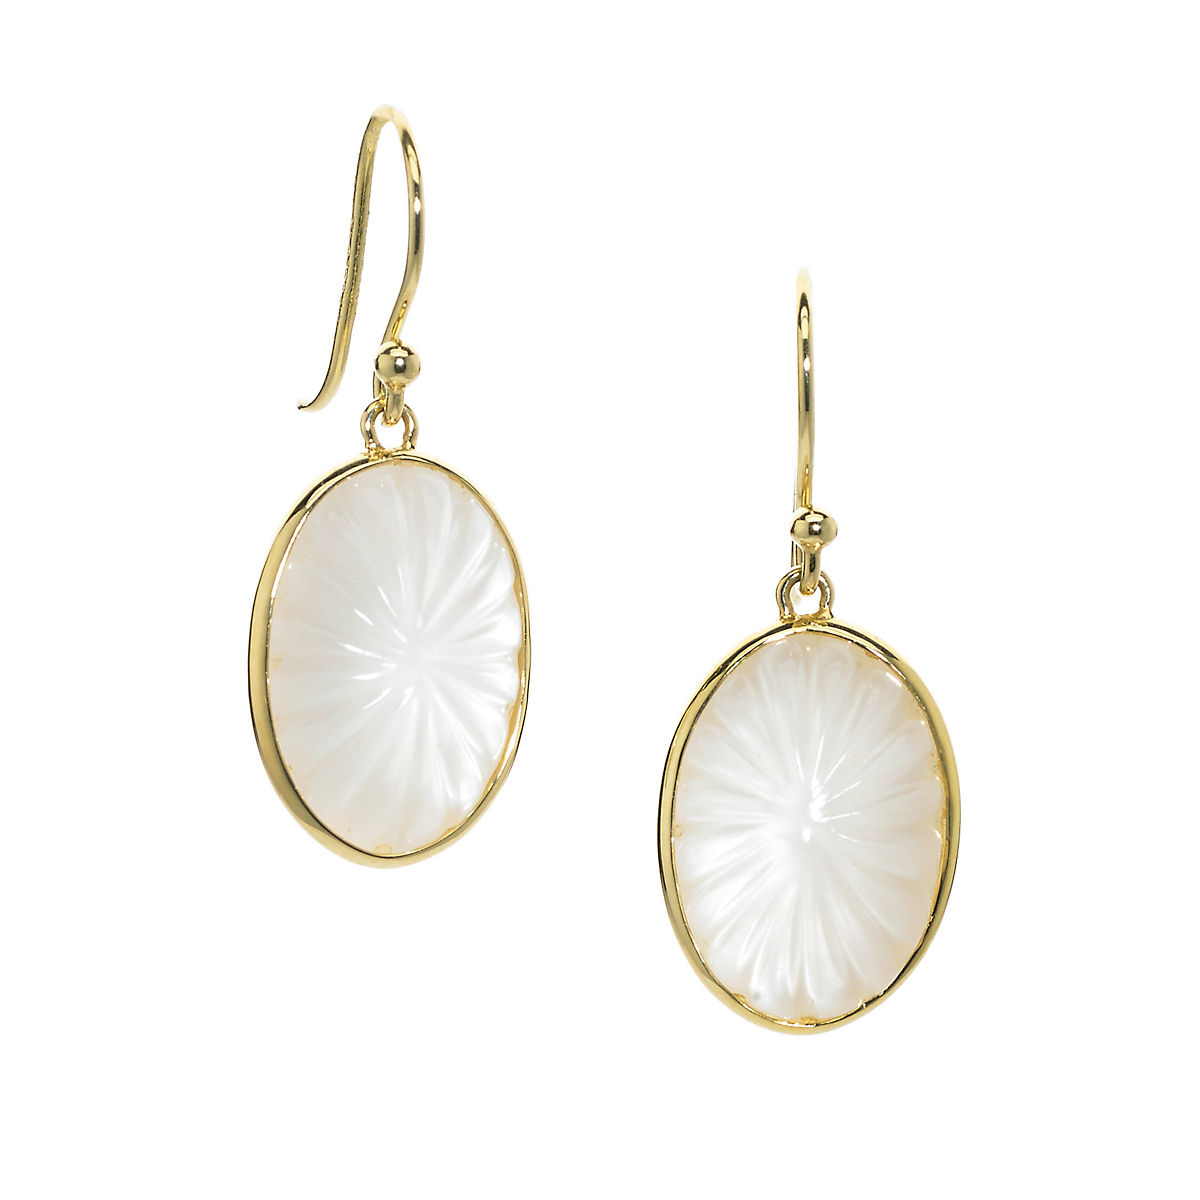 Elizabeth Showers Mother of Pearl & Quartz Soleil Drop Earrings